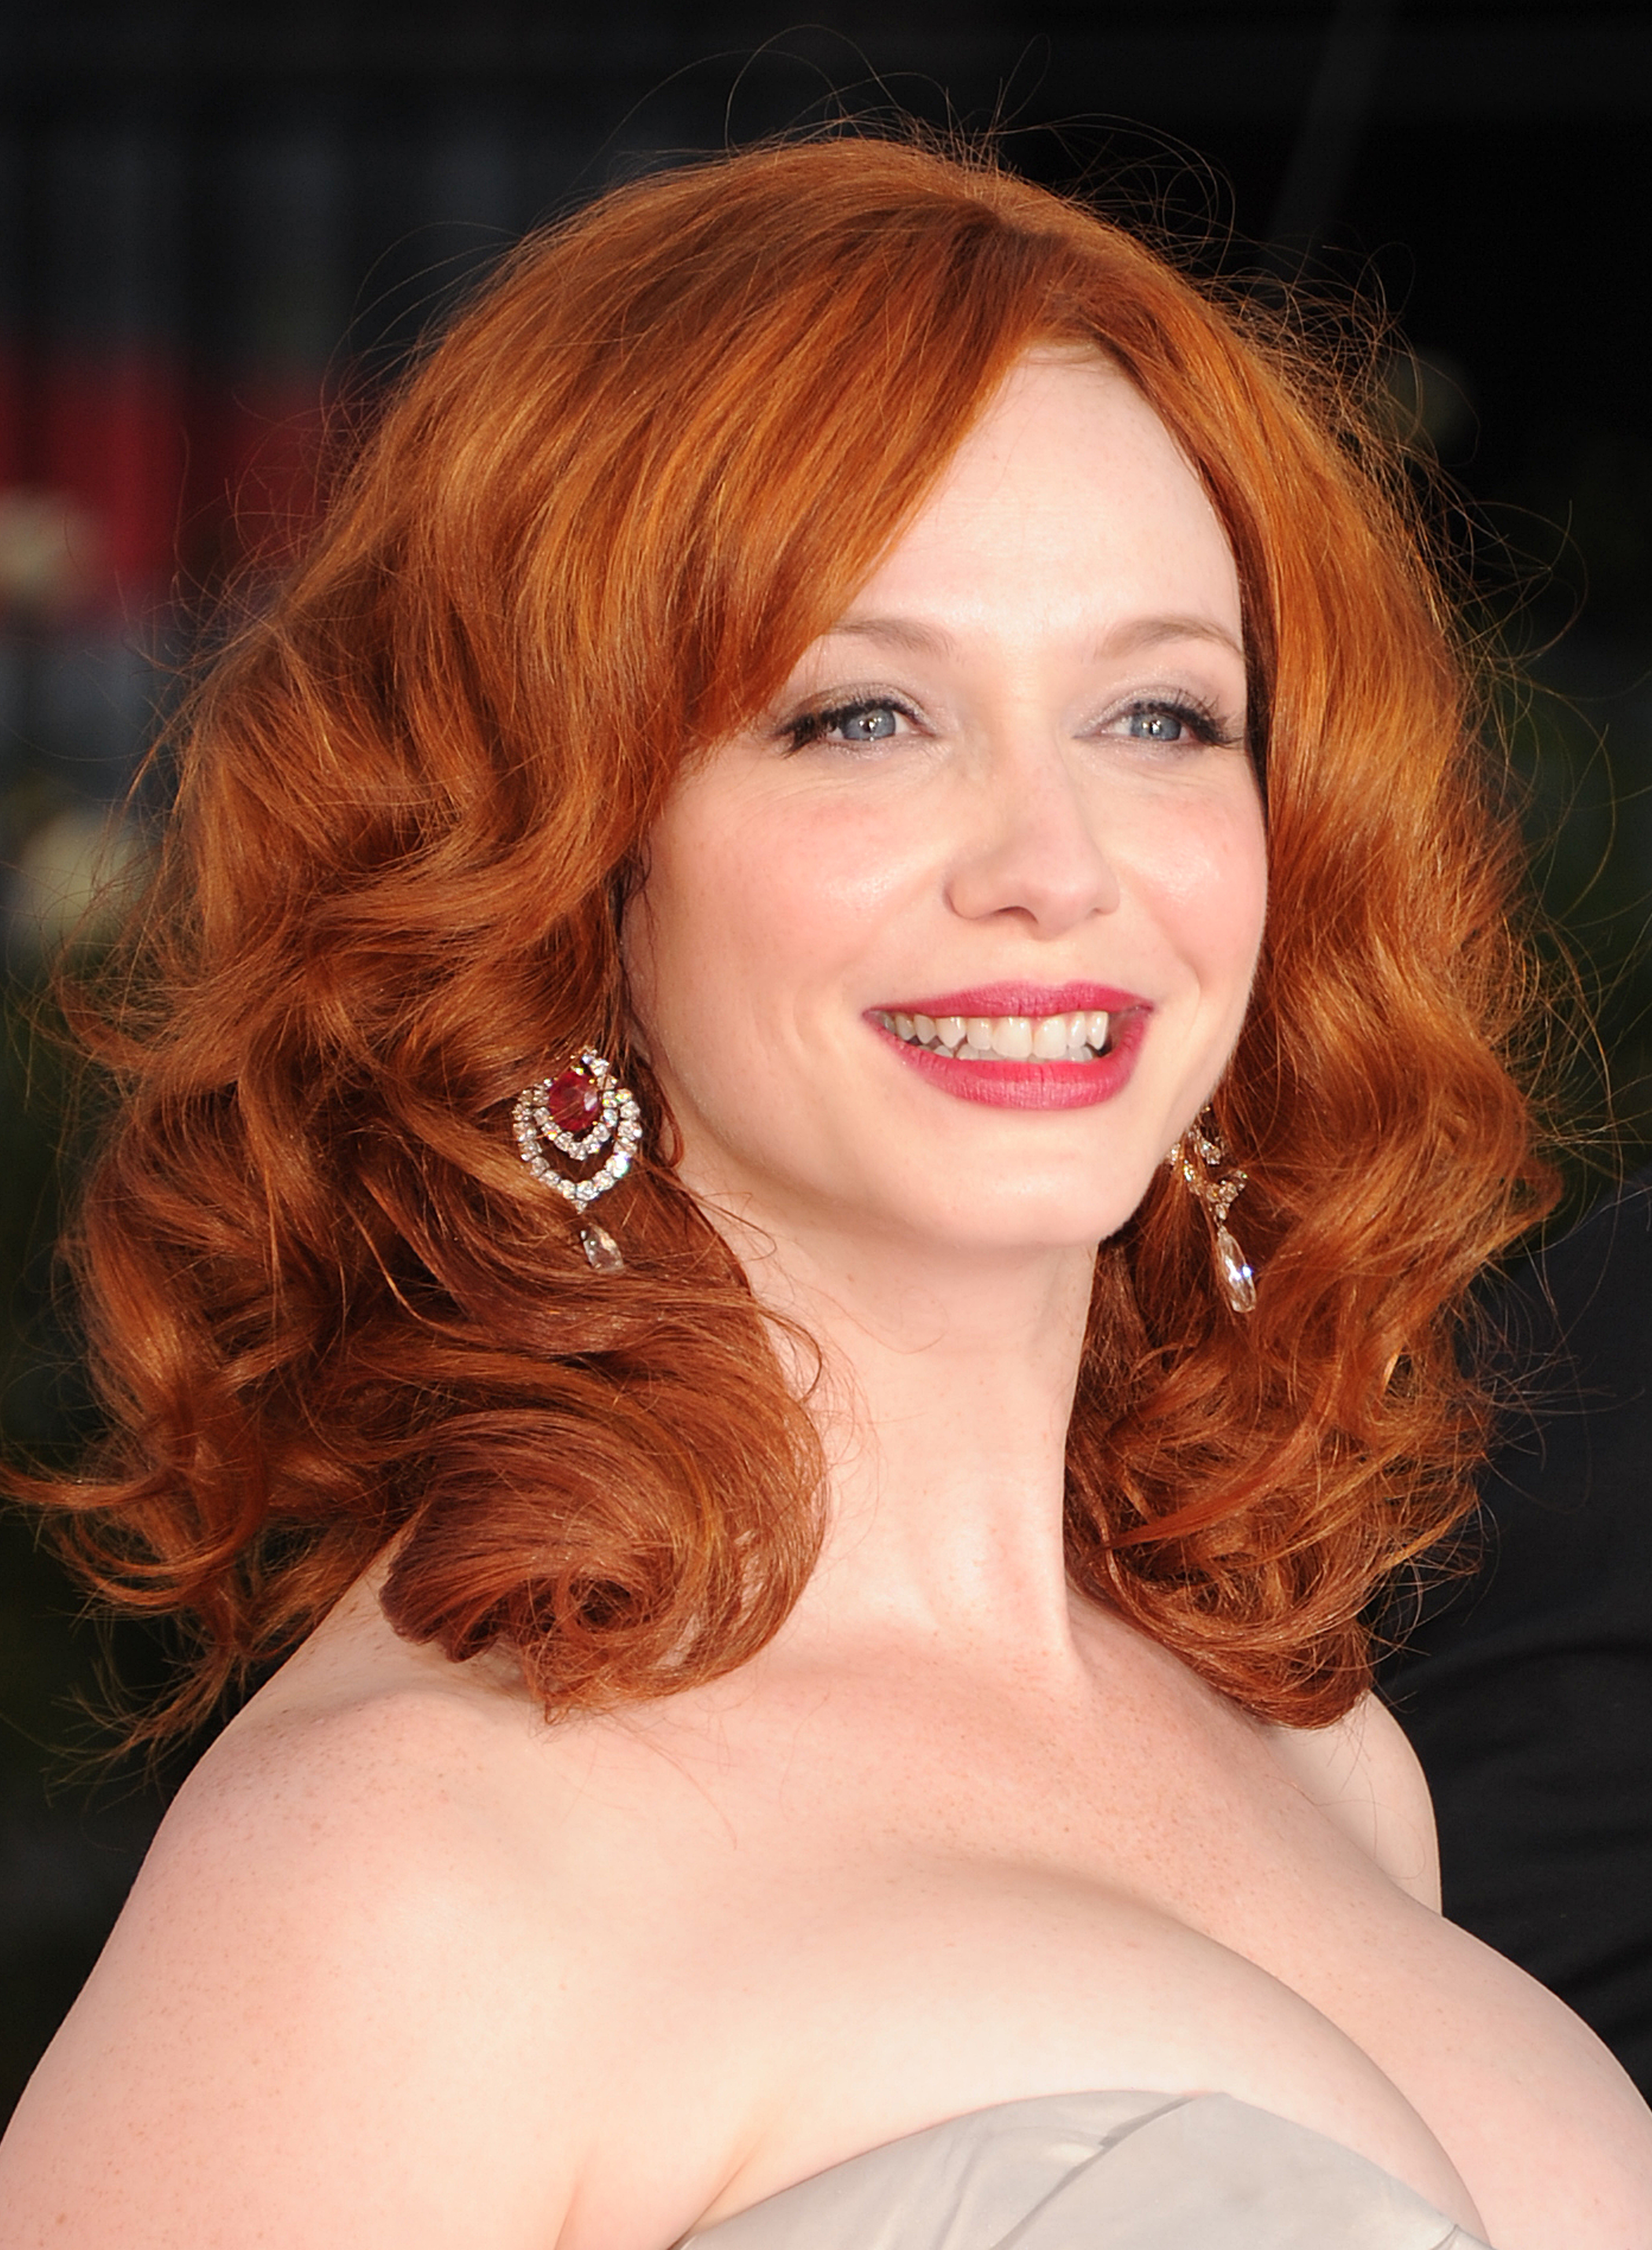 Christina Hendricks The Best Bags Baubles And Heels